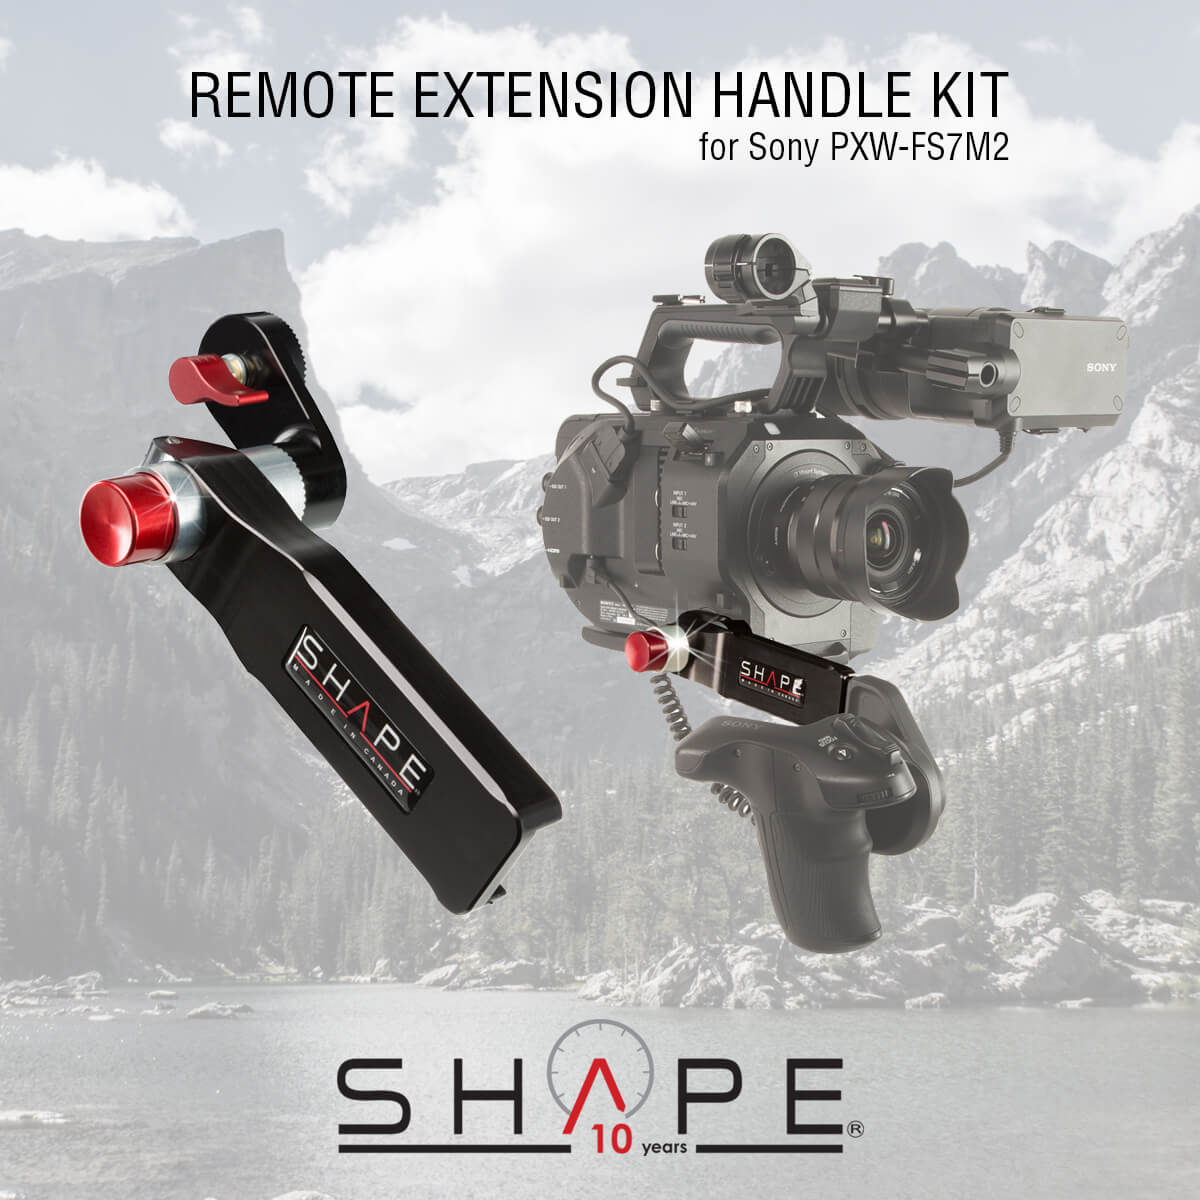 SHAPE RHV2 – SONY FS7M2 Remote Extension Handle Kit